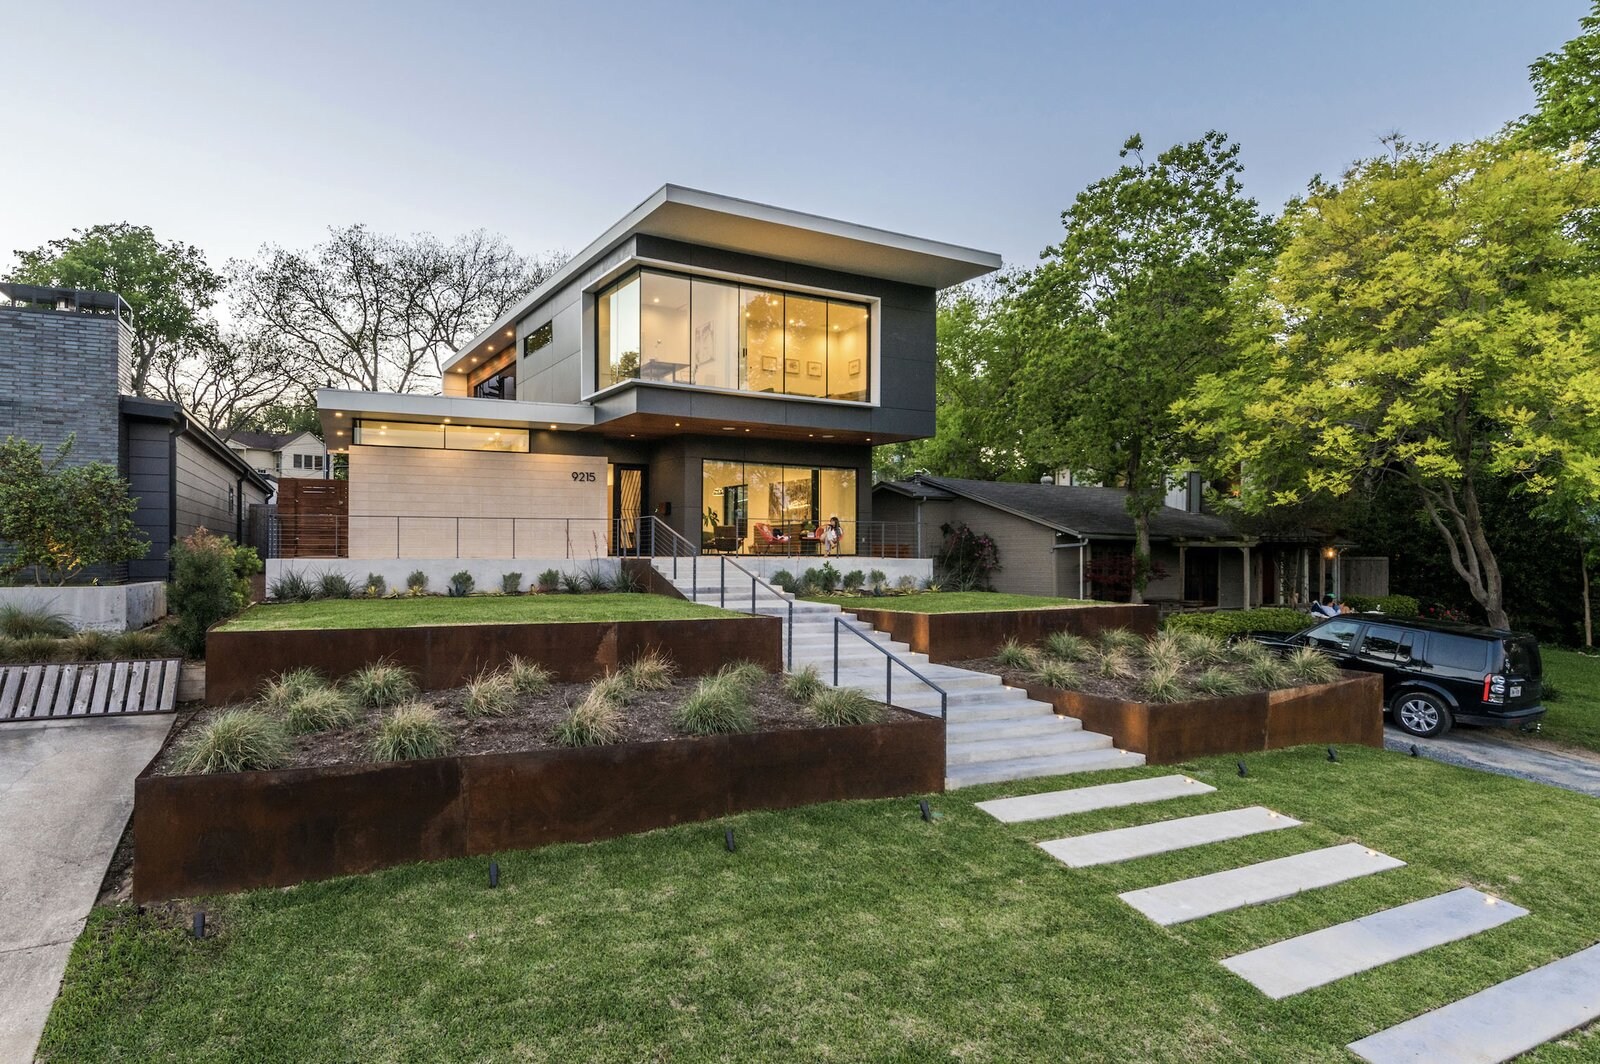 Along the front of the home, tiered landscape sections are bordered by panels of COR-TEN steel, with a central walkway and staircase leading up to the main entrance. The glassy front facade provides multiple vantage points for enjoying views of the active neighborhood.